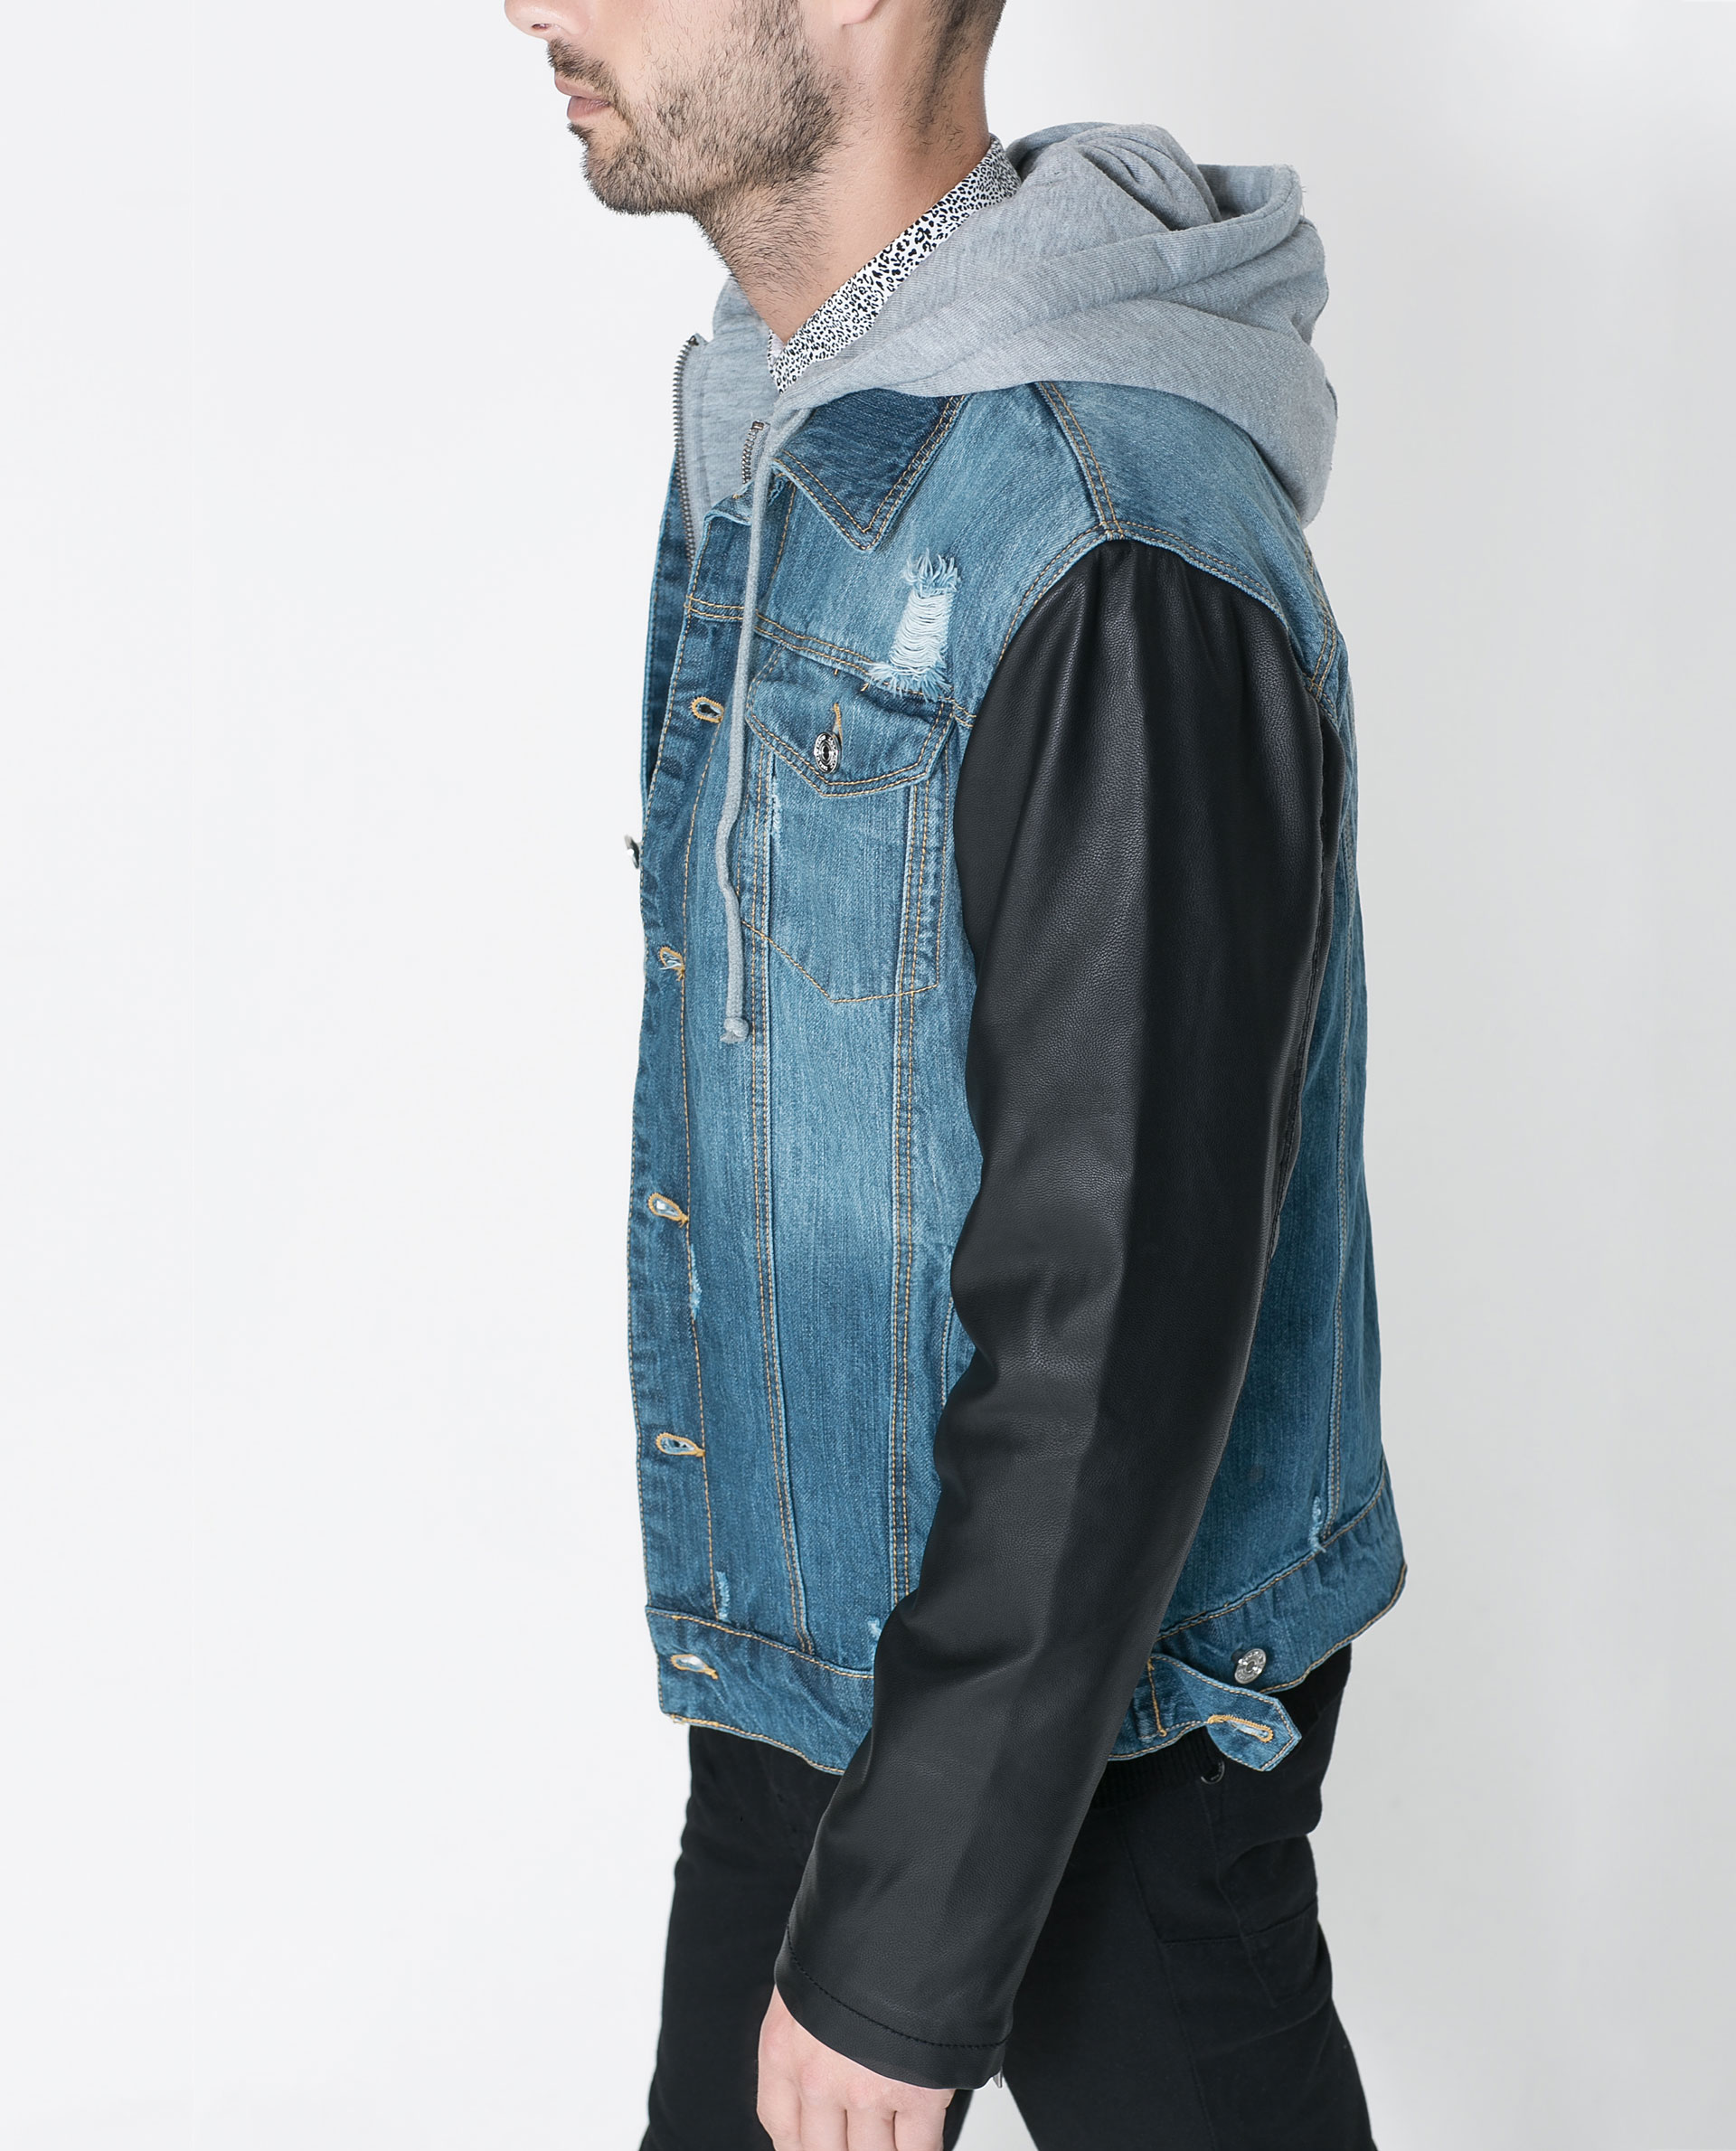 Jean jacket with faux leather sleeves